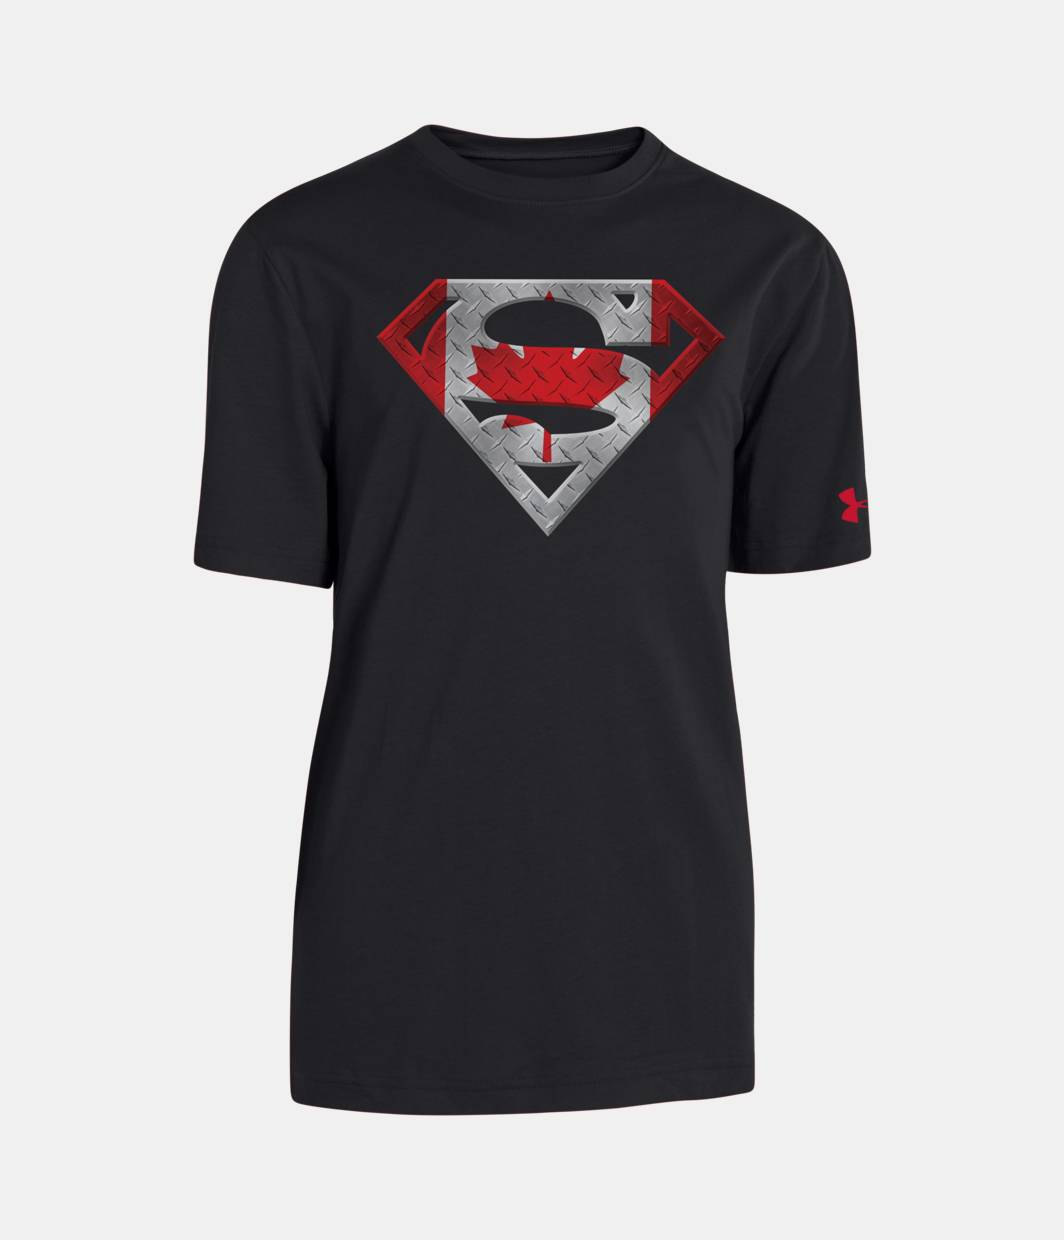 Boys canada under armour alter ego superman t shirt for Under armour shirts canada